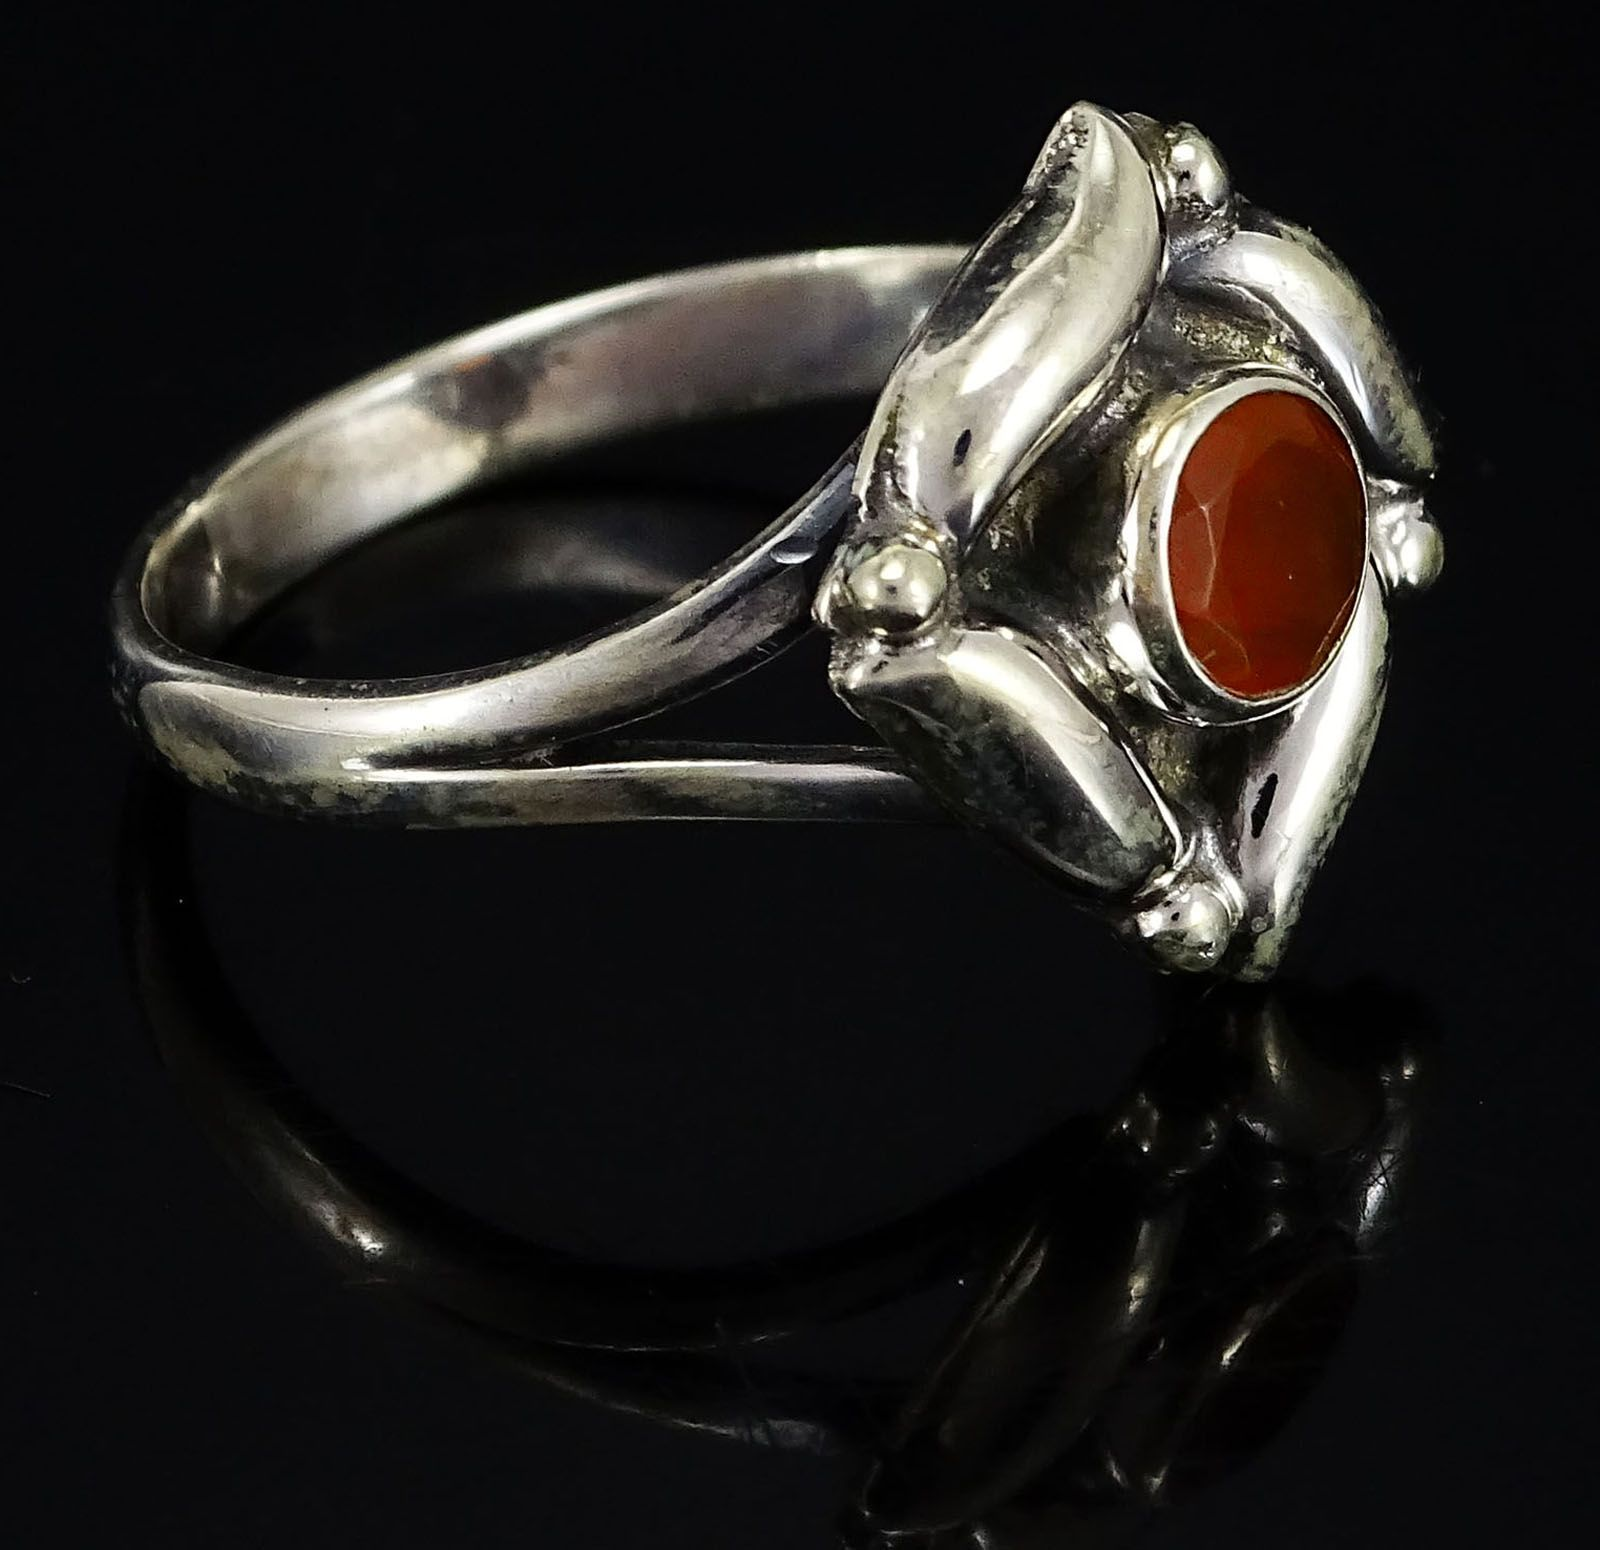 Details About Carnelian 925 Sterling Silver Ring Uk Sz P 1 2 Gorgeous Jewelry Sjr4020 Par Silver Rings Ring Size Gemstones